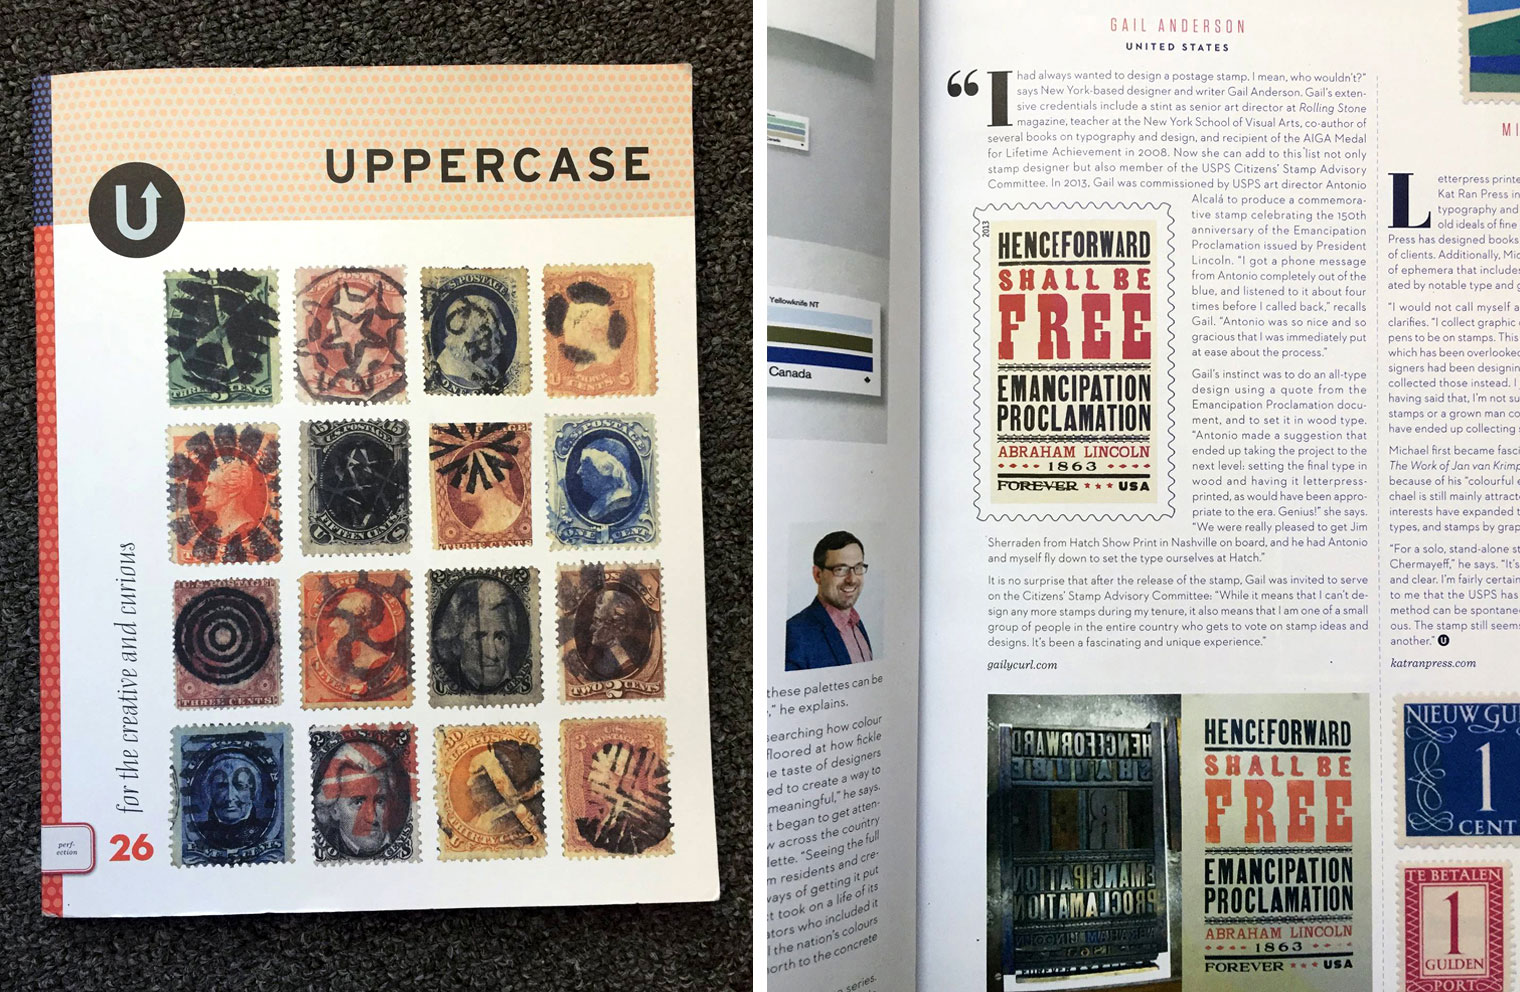 Emancipation Proclamation Stamp in Uppercase Magazine